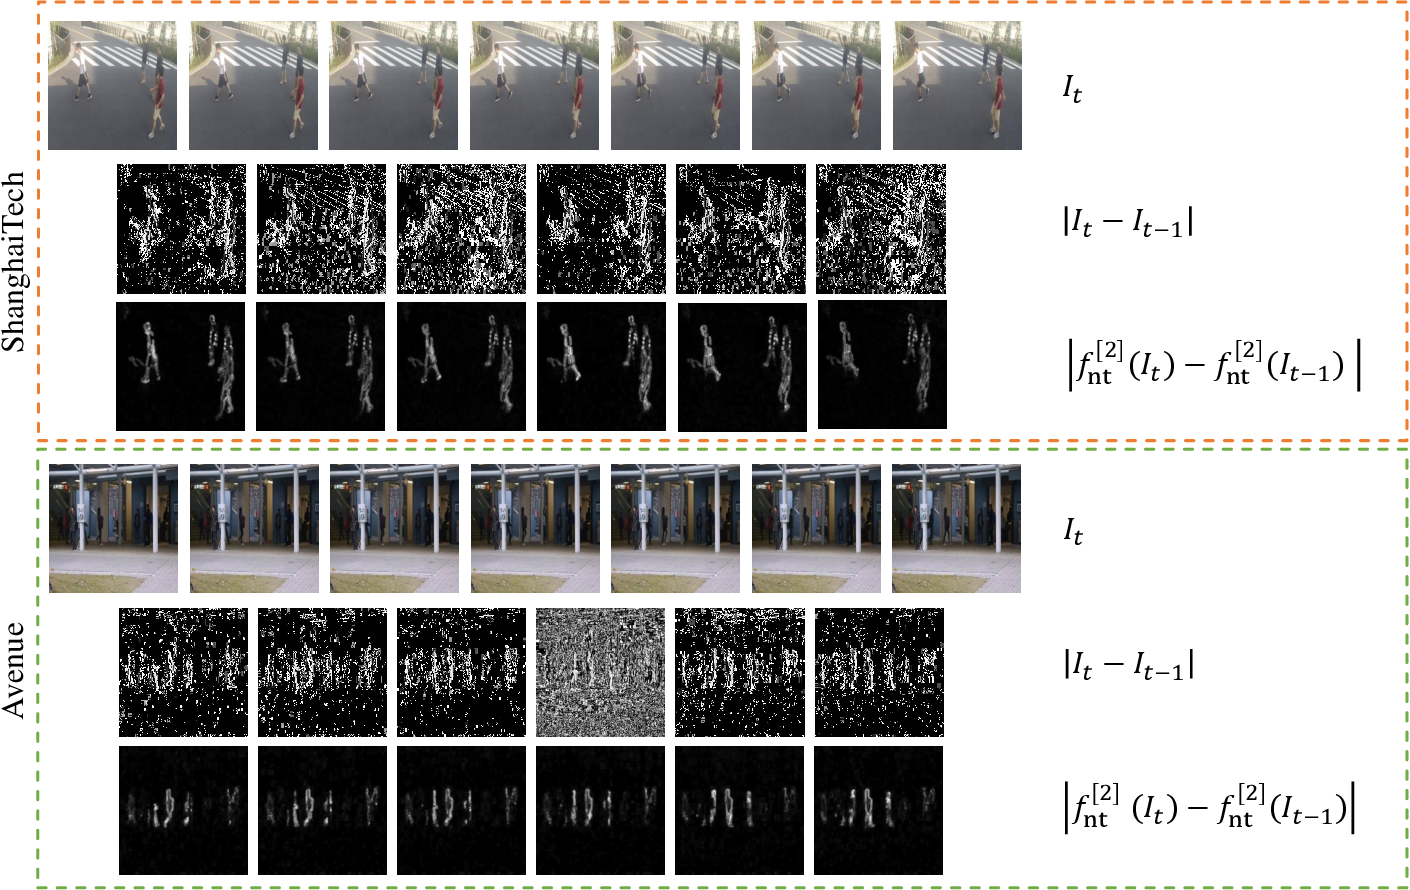 Figure 2 for Robust Unsupervised Video Anomaly Detection by Multi-Path Frame Prediction